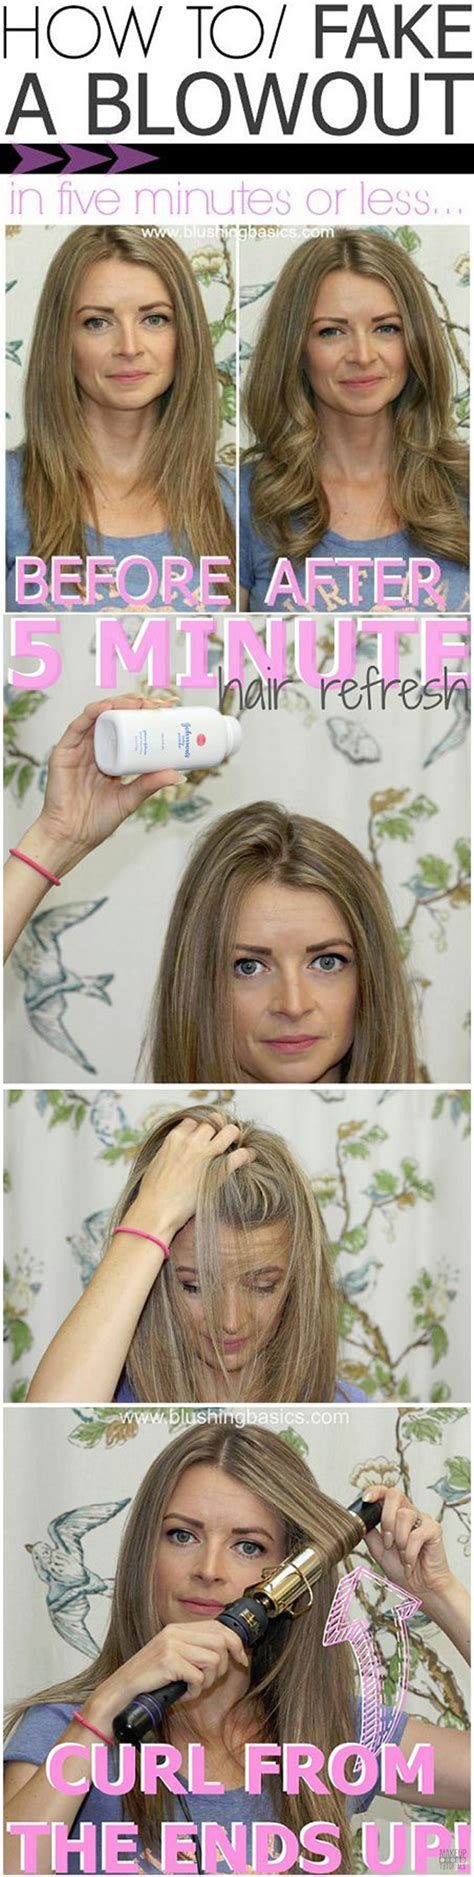 easy hairstyles hair hacks tips and tricks for lazy 59 beauty hacks you need to know about diy beauty tutorials